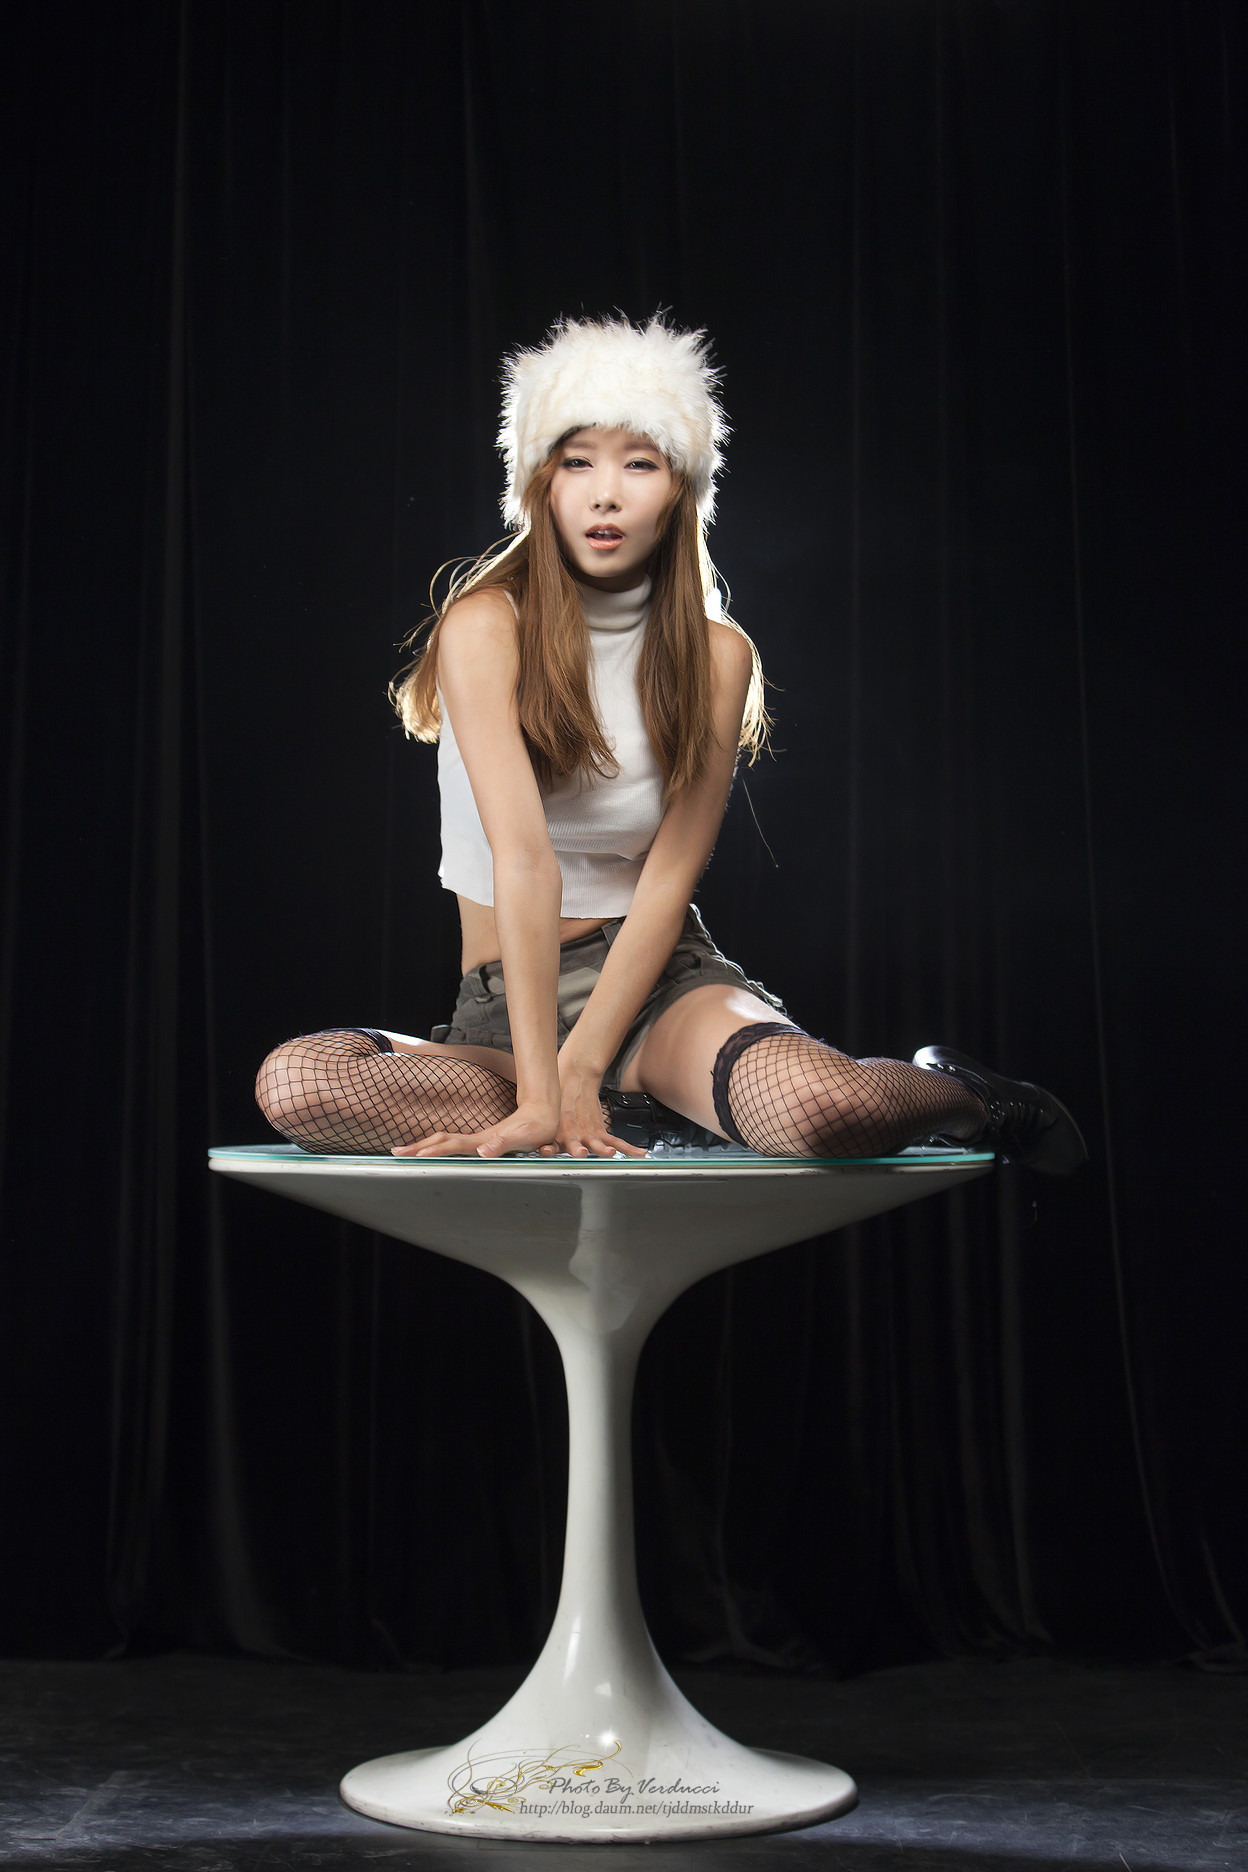 [Cheon Bo Young] 2013.1.8 - Fishnets & Furry Hat Supp.